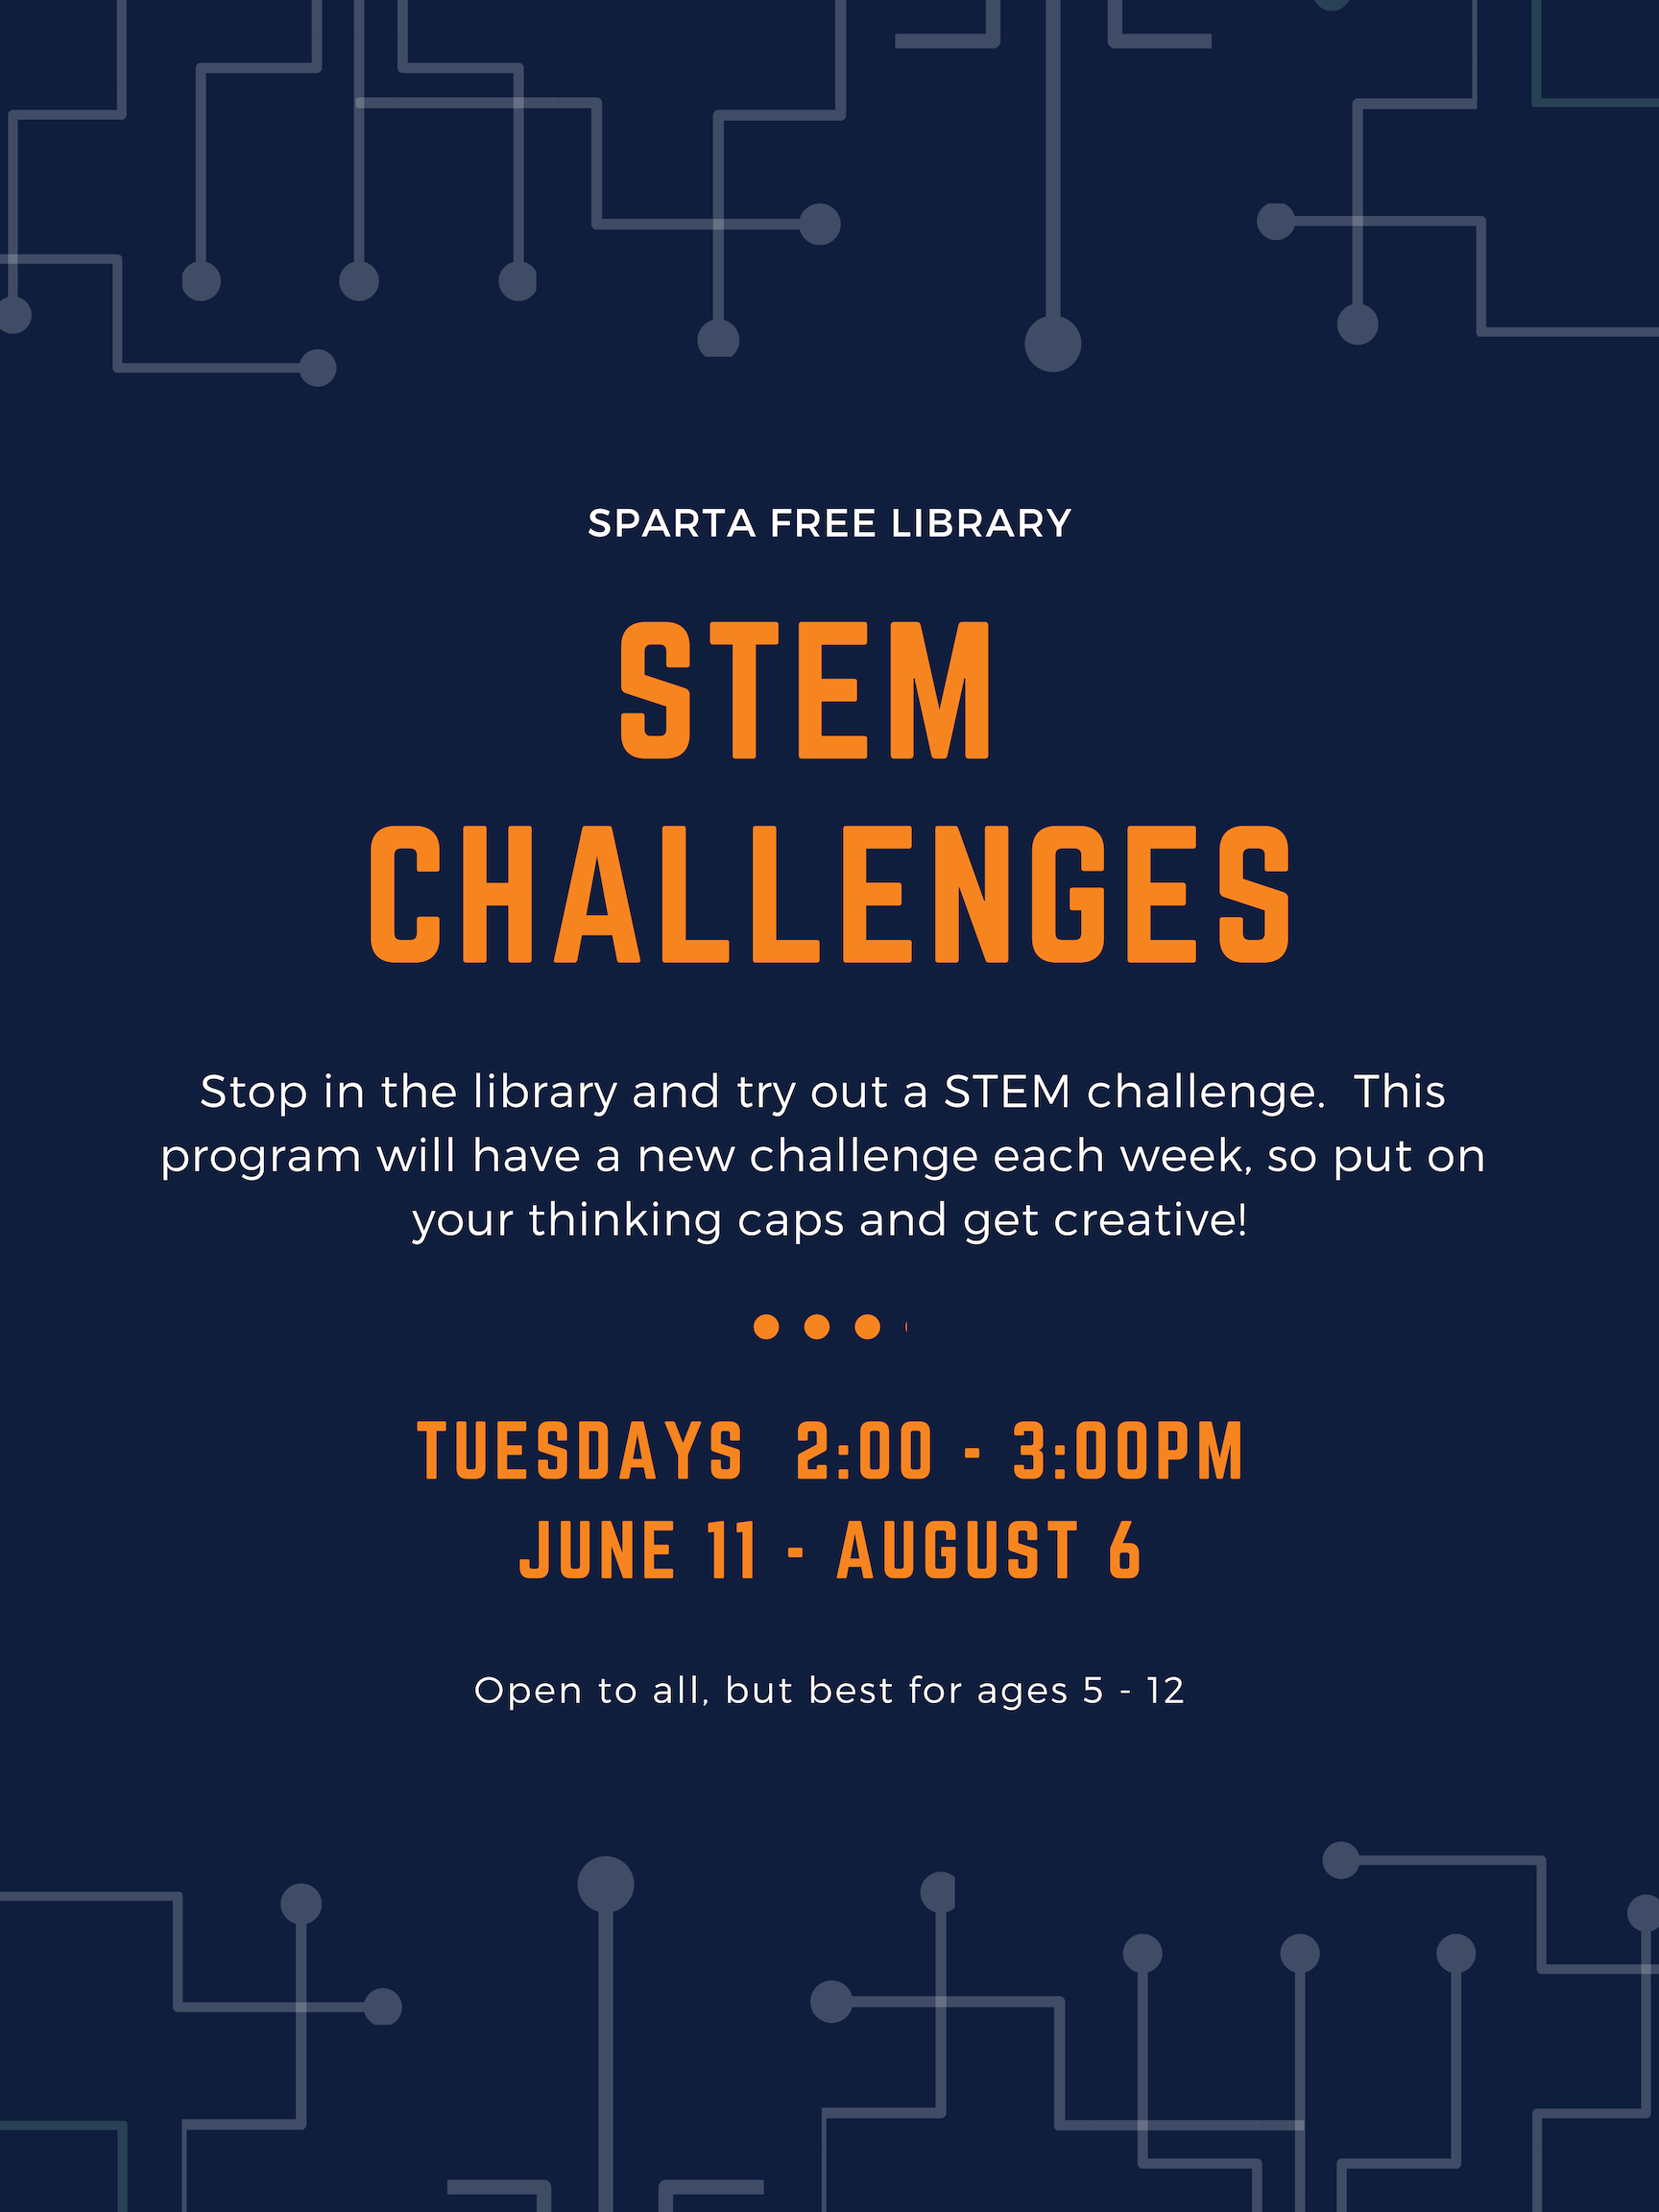 STEM Challenges @ Sparta Free Library